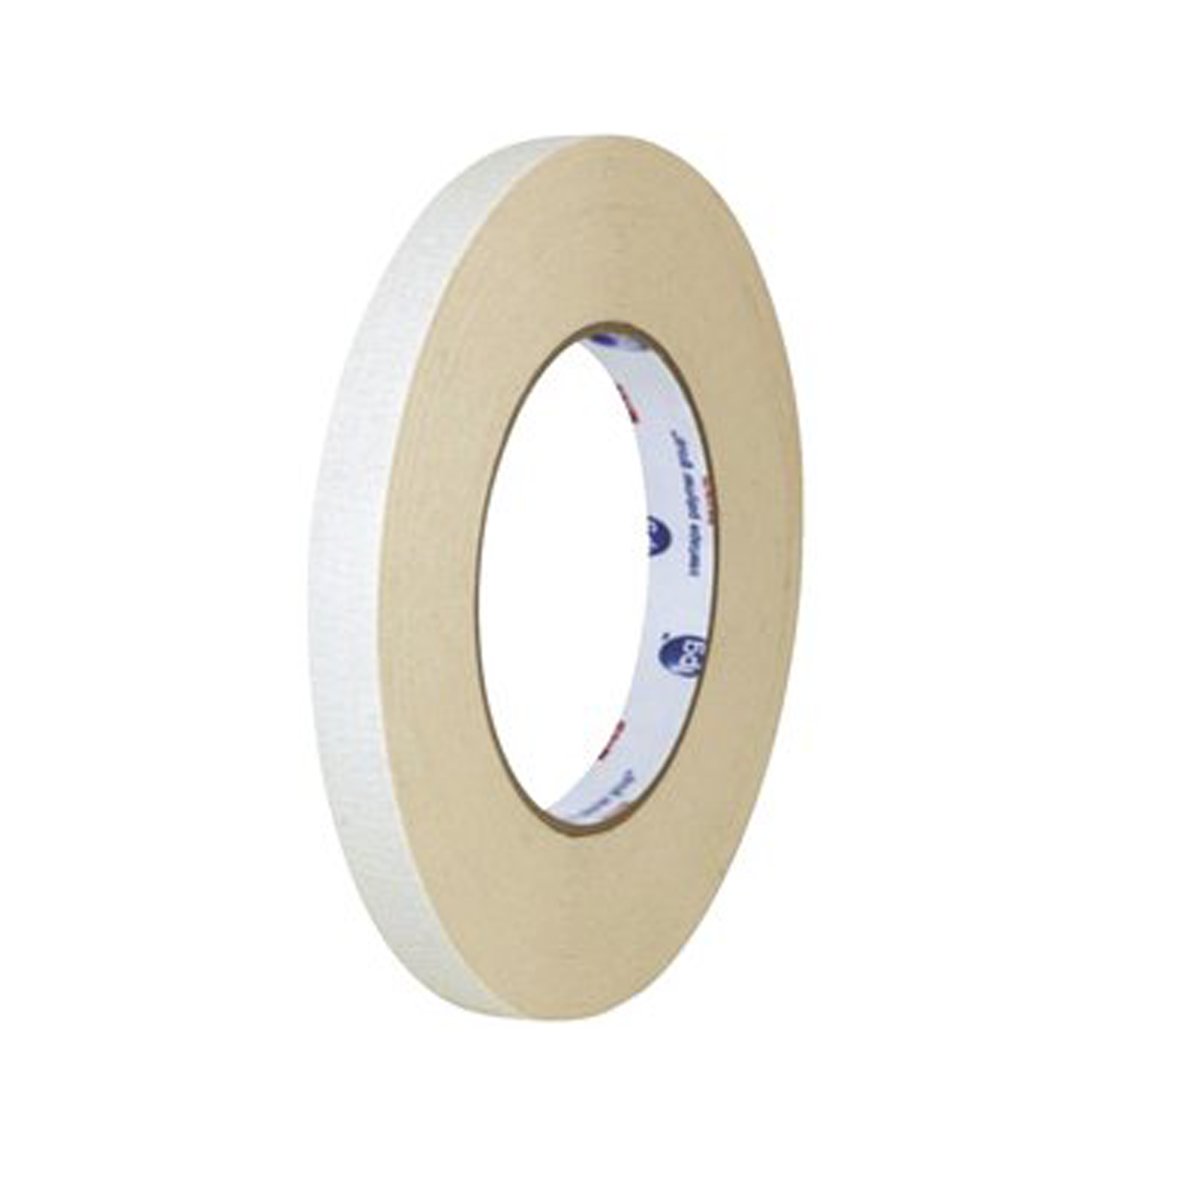 Double Coated Tape, Cantech #405, PET Acrylic, 12 mm x 33m